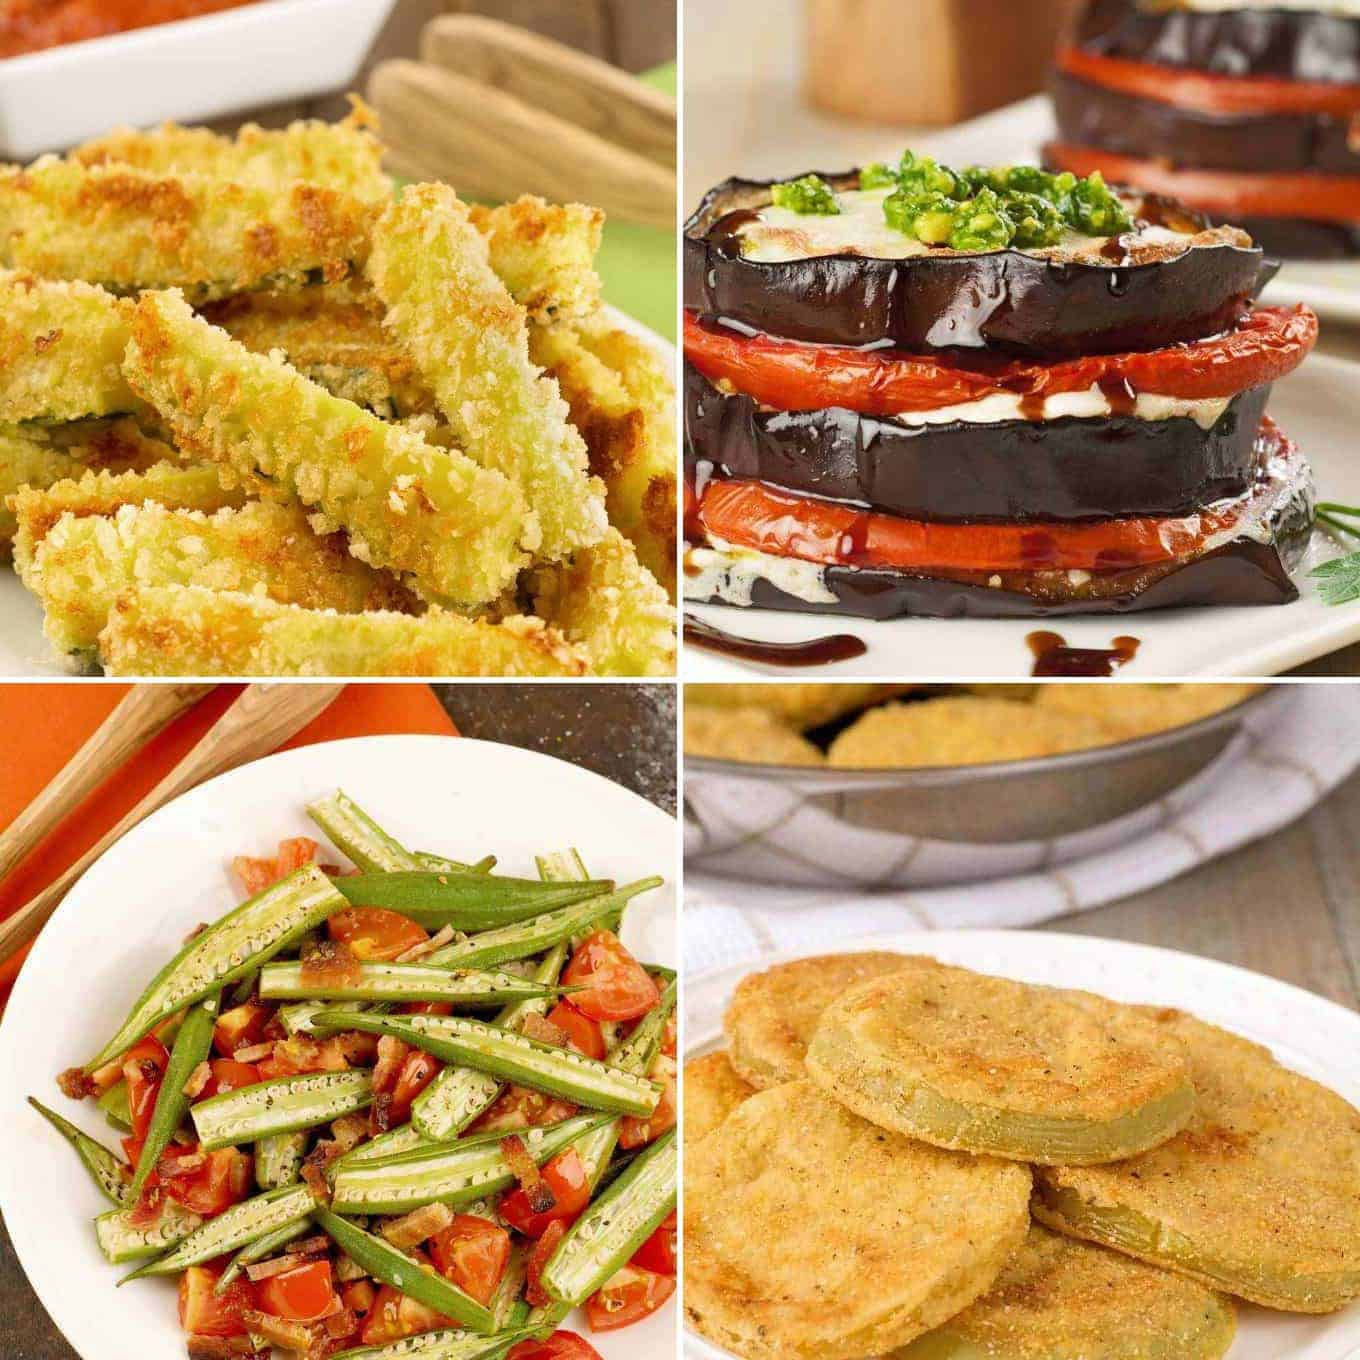 Collage of four summer veggie recipes: Oven Fried Zucchini Sticks, Eggplant, Tomato and Pesto Napoleons, Roasted Okra with Bacon and Tomatoes, and Fried Green Tomatoes